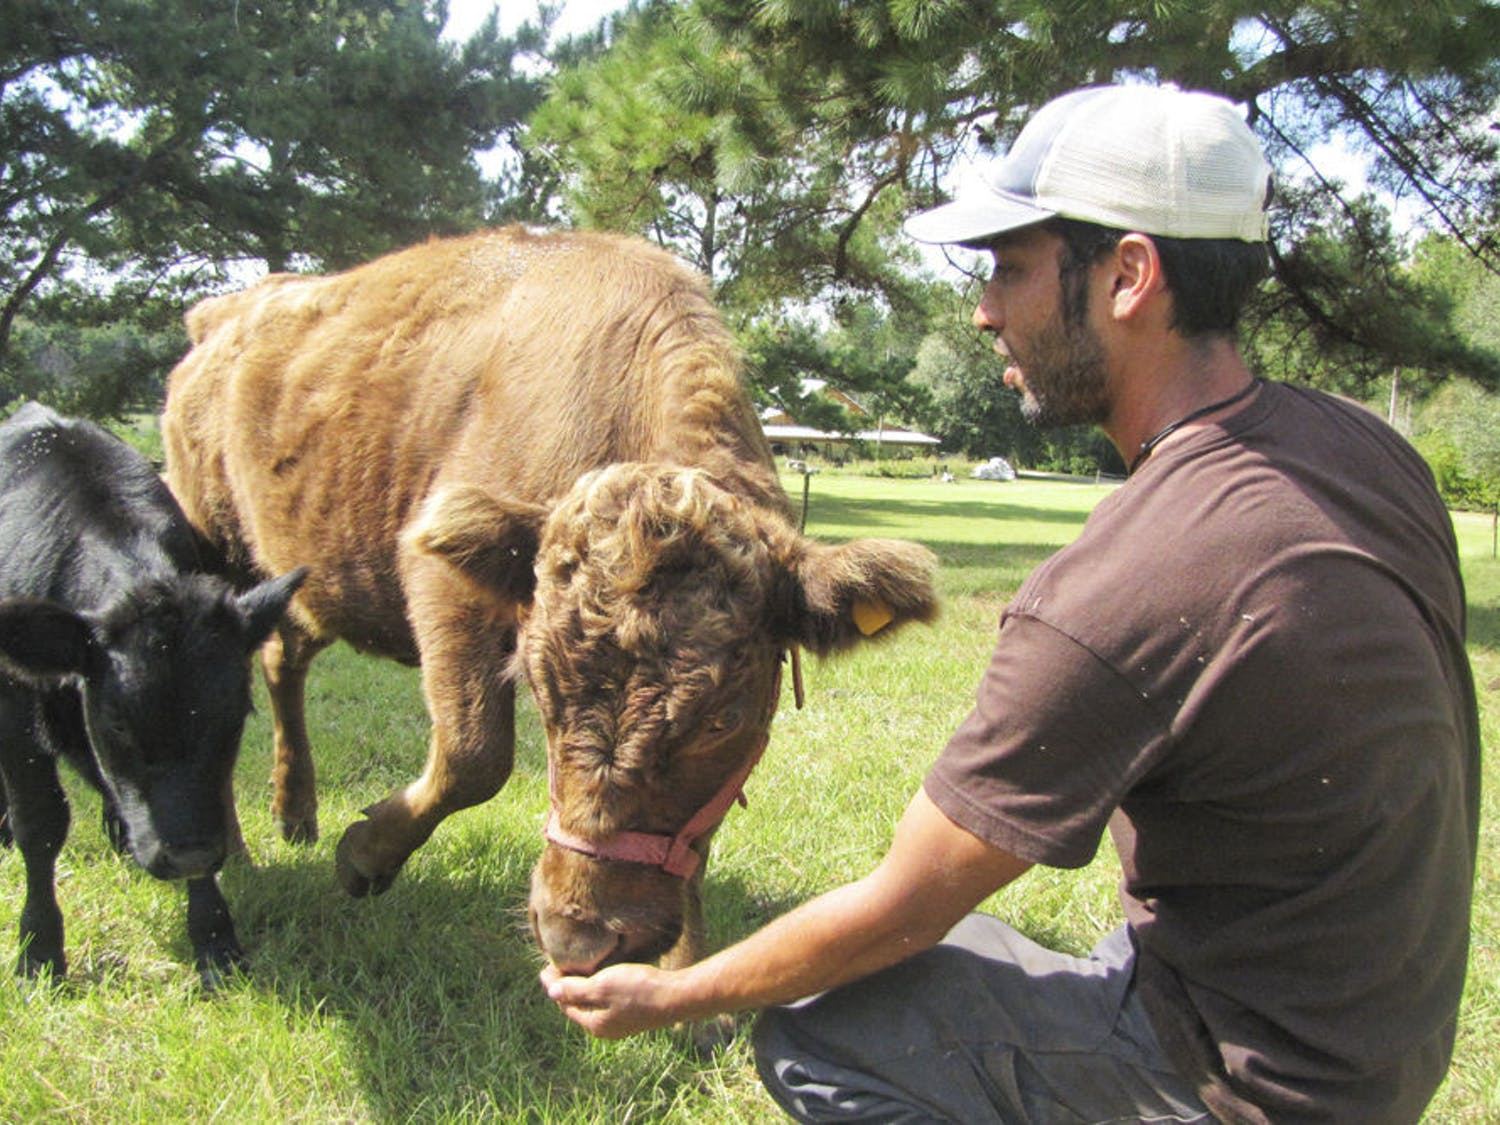 Swallowtail Farms founder Noah Shitama feeds grain to 2-year-old Dexter cow Grainne and her calf, 4-month-old Brie, on Monday. The two will be part of the farm's new creamery set to open in early 2015. See story on page 3.